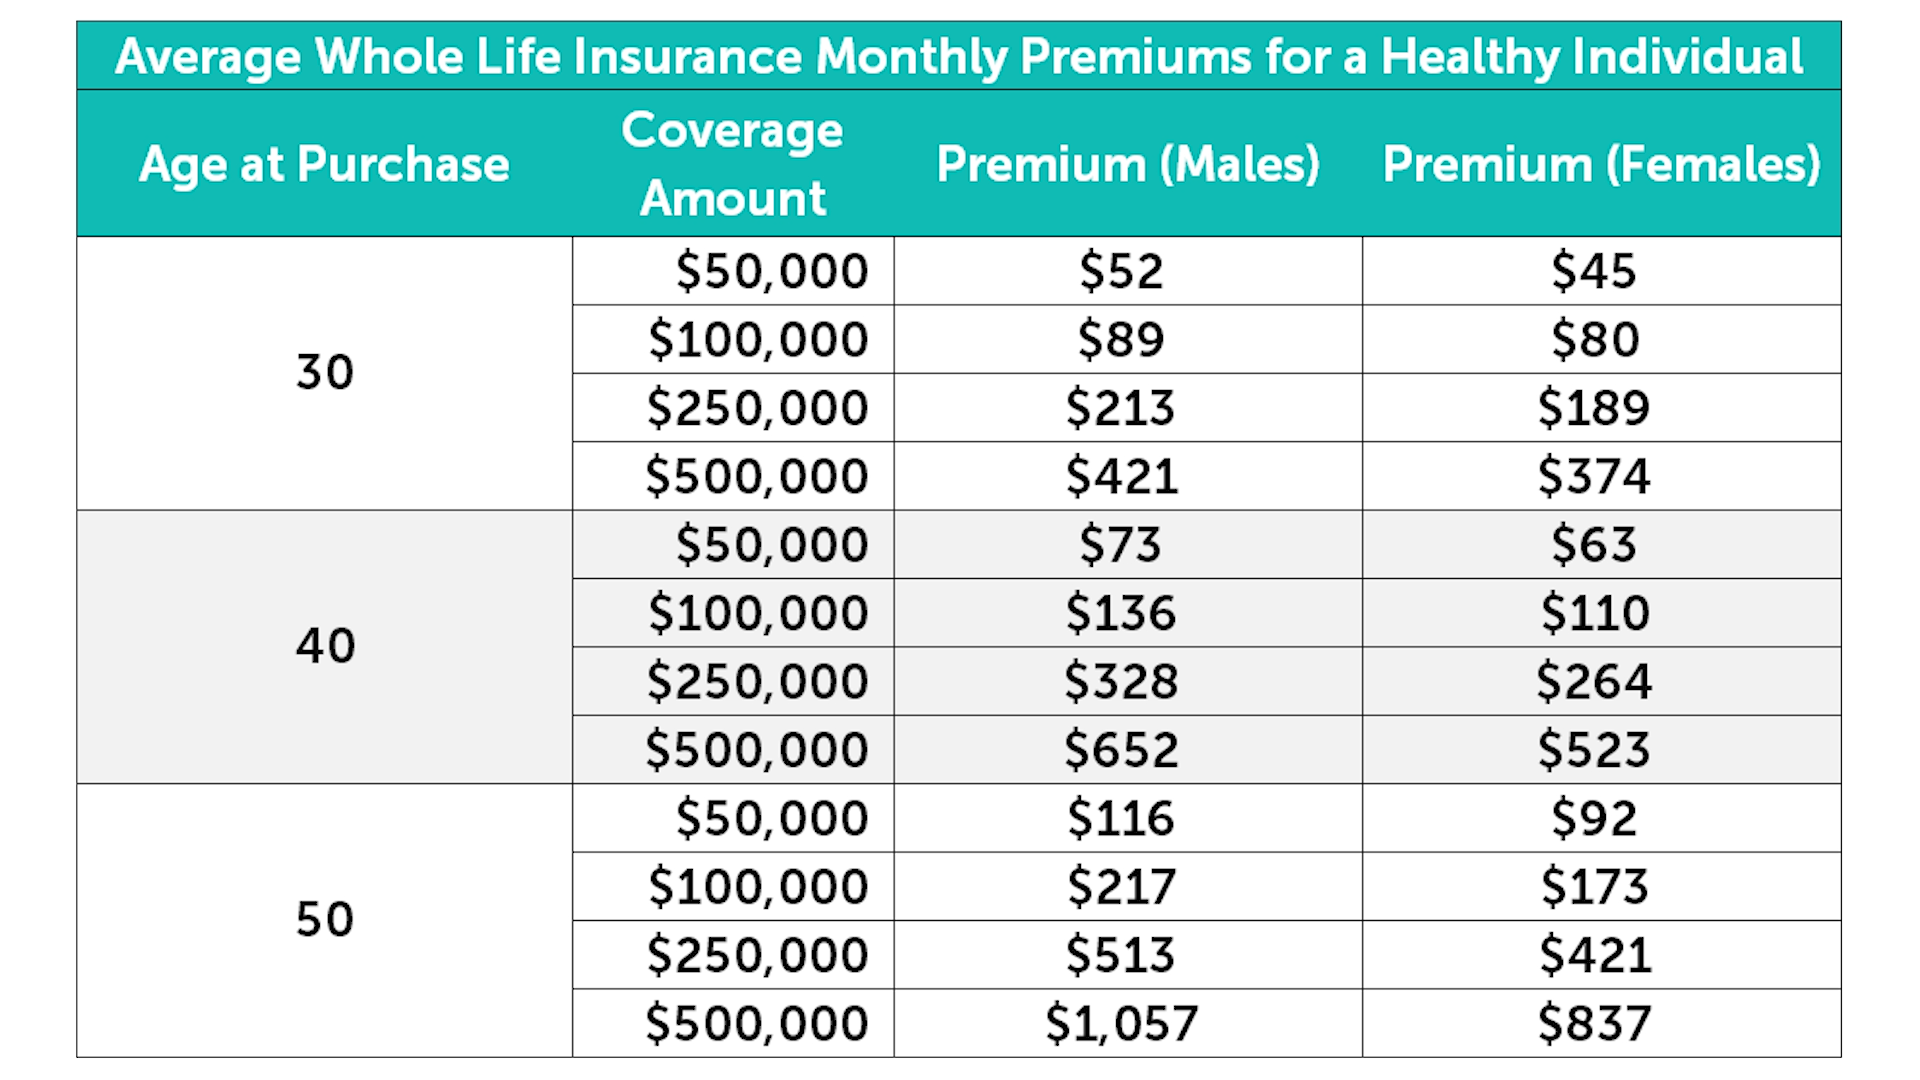 Average whole life insurance premiums